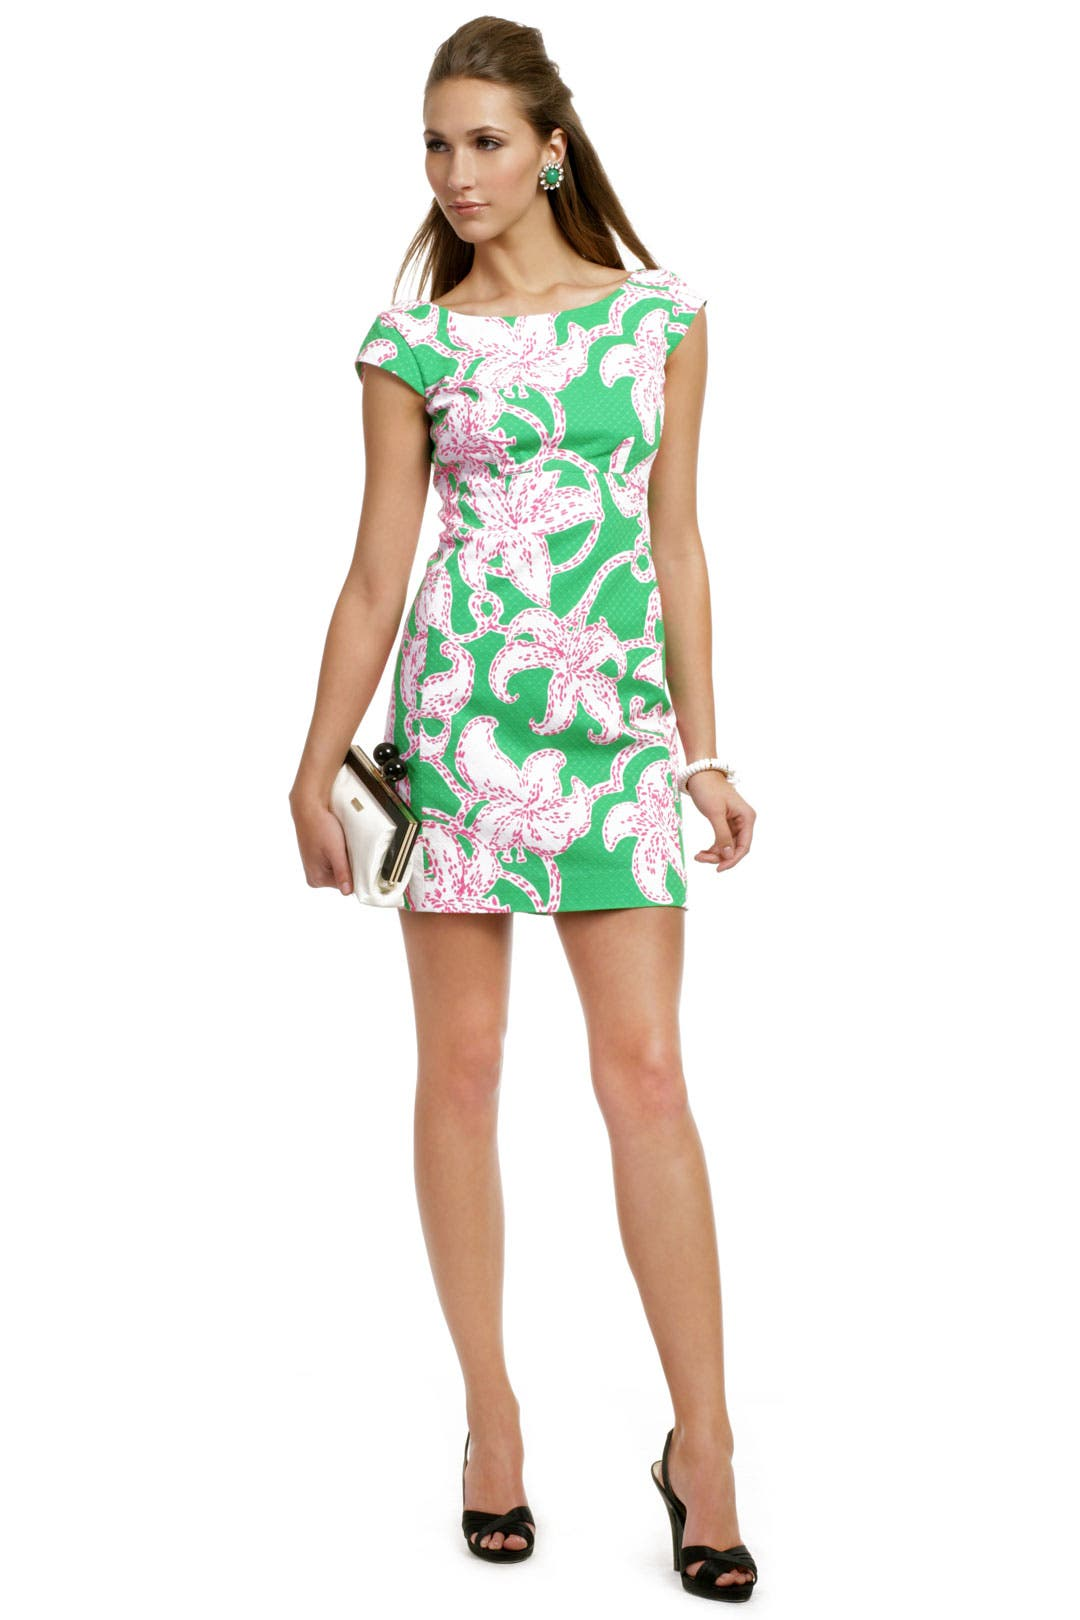 Lilly Pulitzer Dresses For Women Online Sale